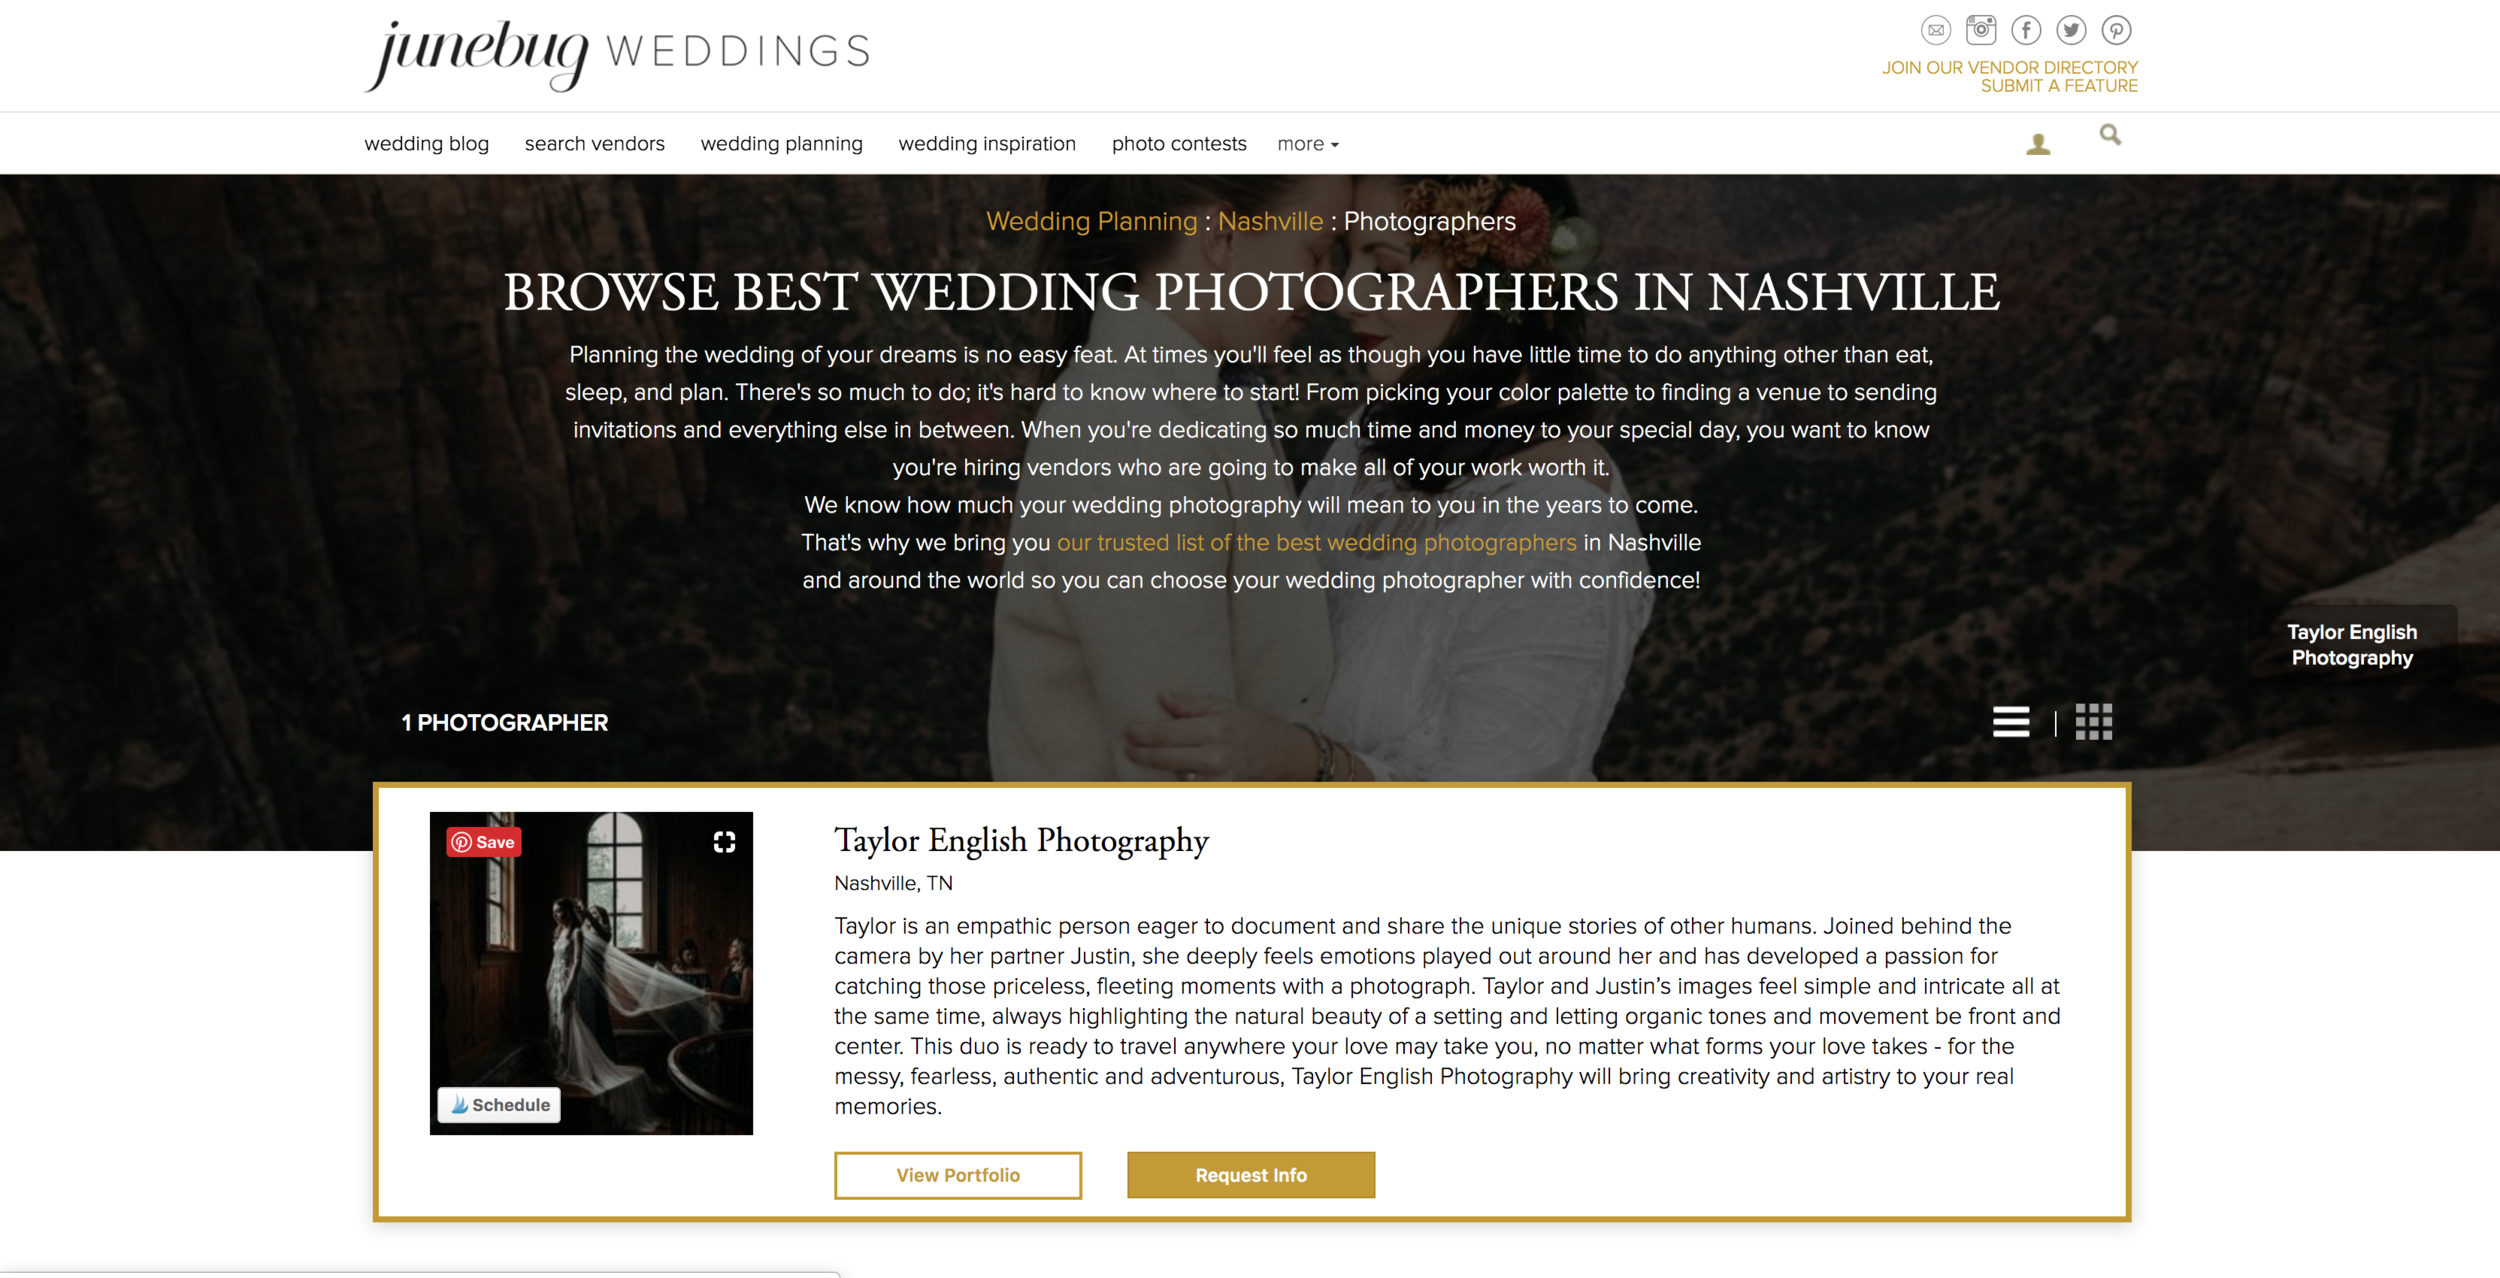 Taylor English Photography is the number one featured wedding photographer in Tennessee and South Carolina on Junebug Weddings' vendor directory list.